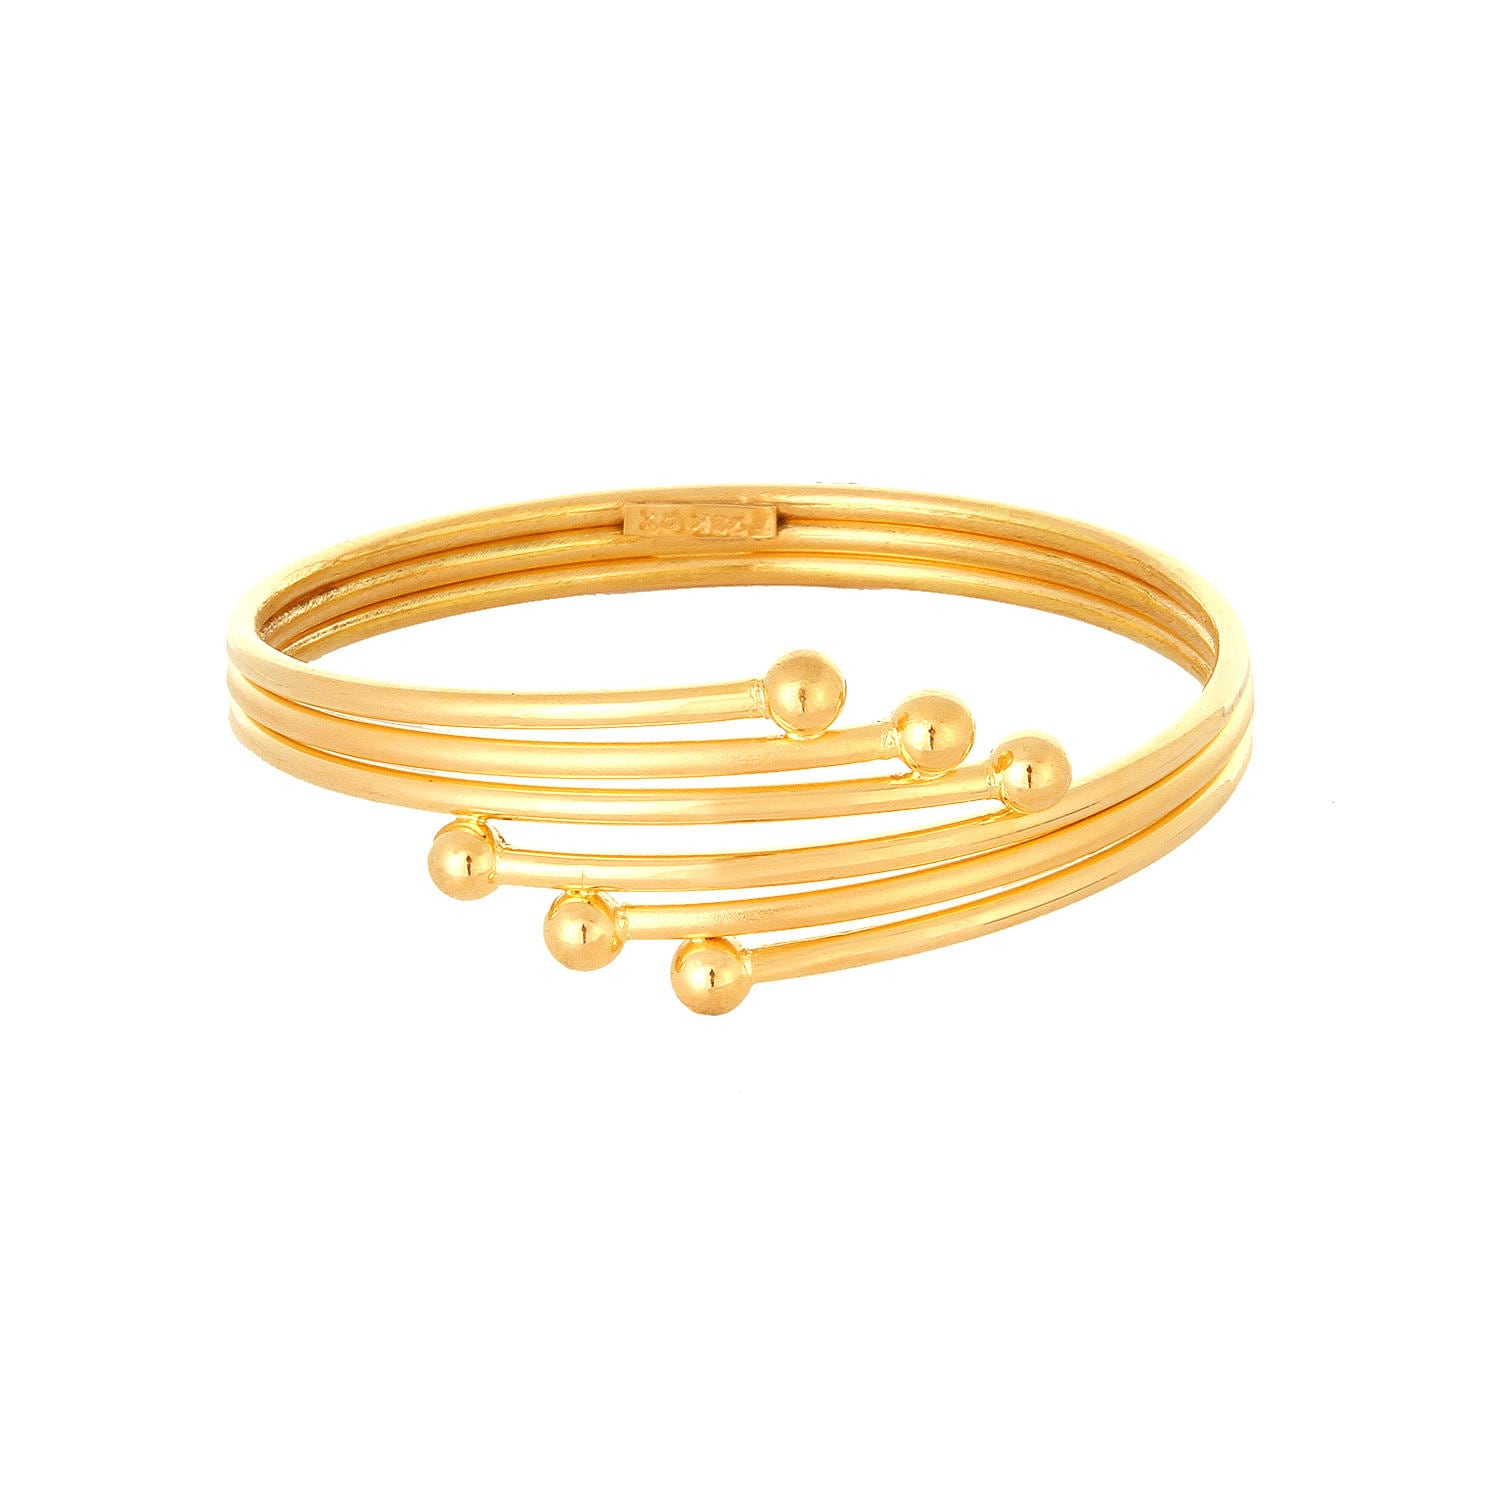 prices best b india at bangle women for bangles in plain bracelets online gold bracelet buy